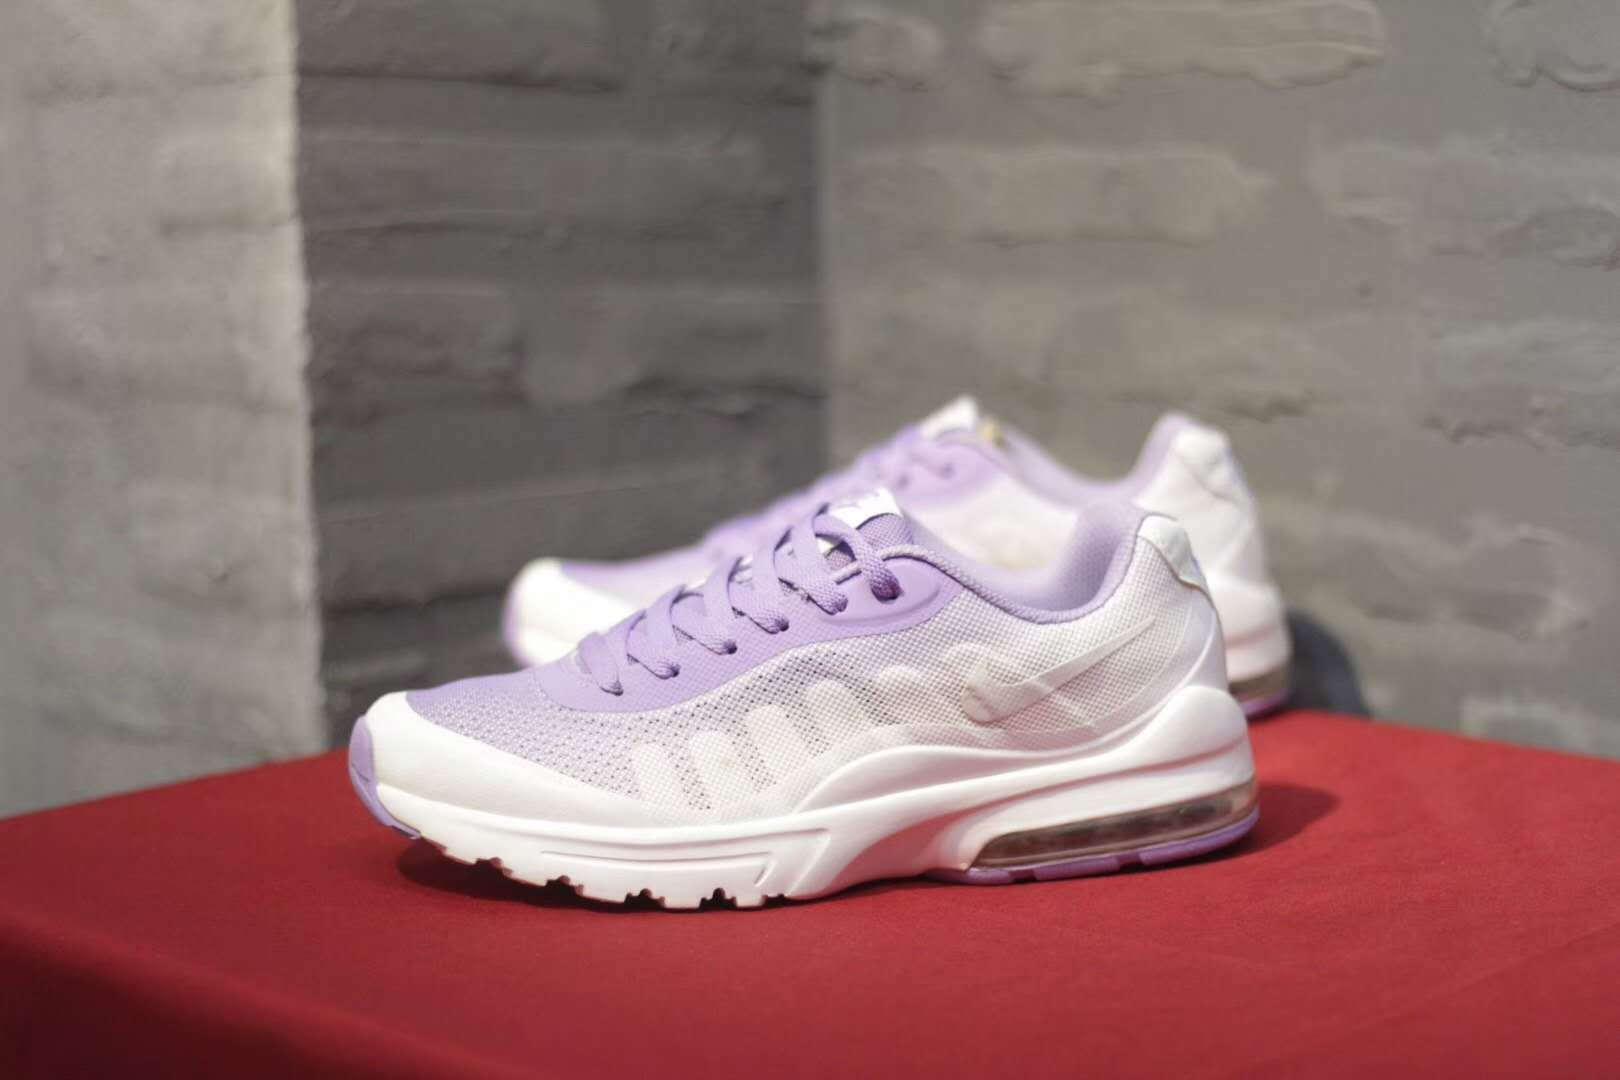 huge discount 8bf88 21f83 Women Nike Air Max Invigor Print 95 Light Purple White Shoes